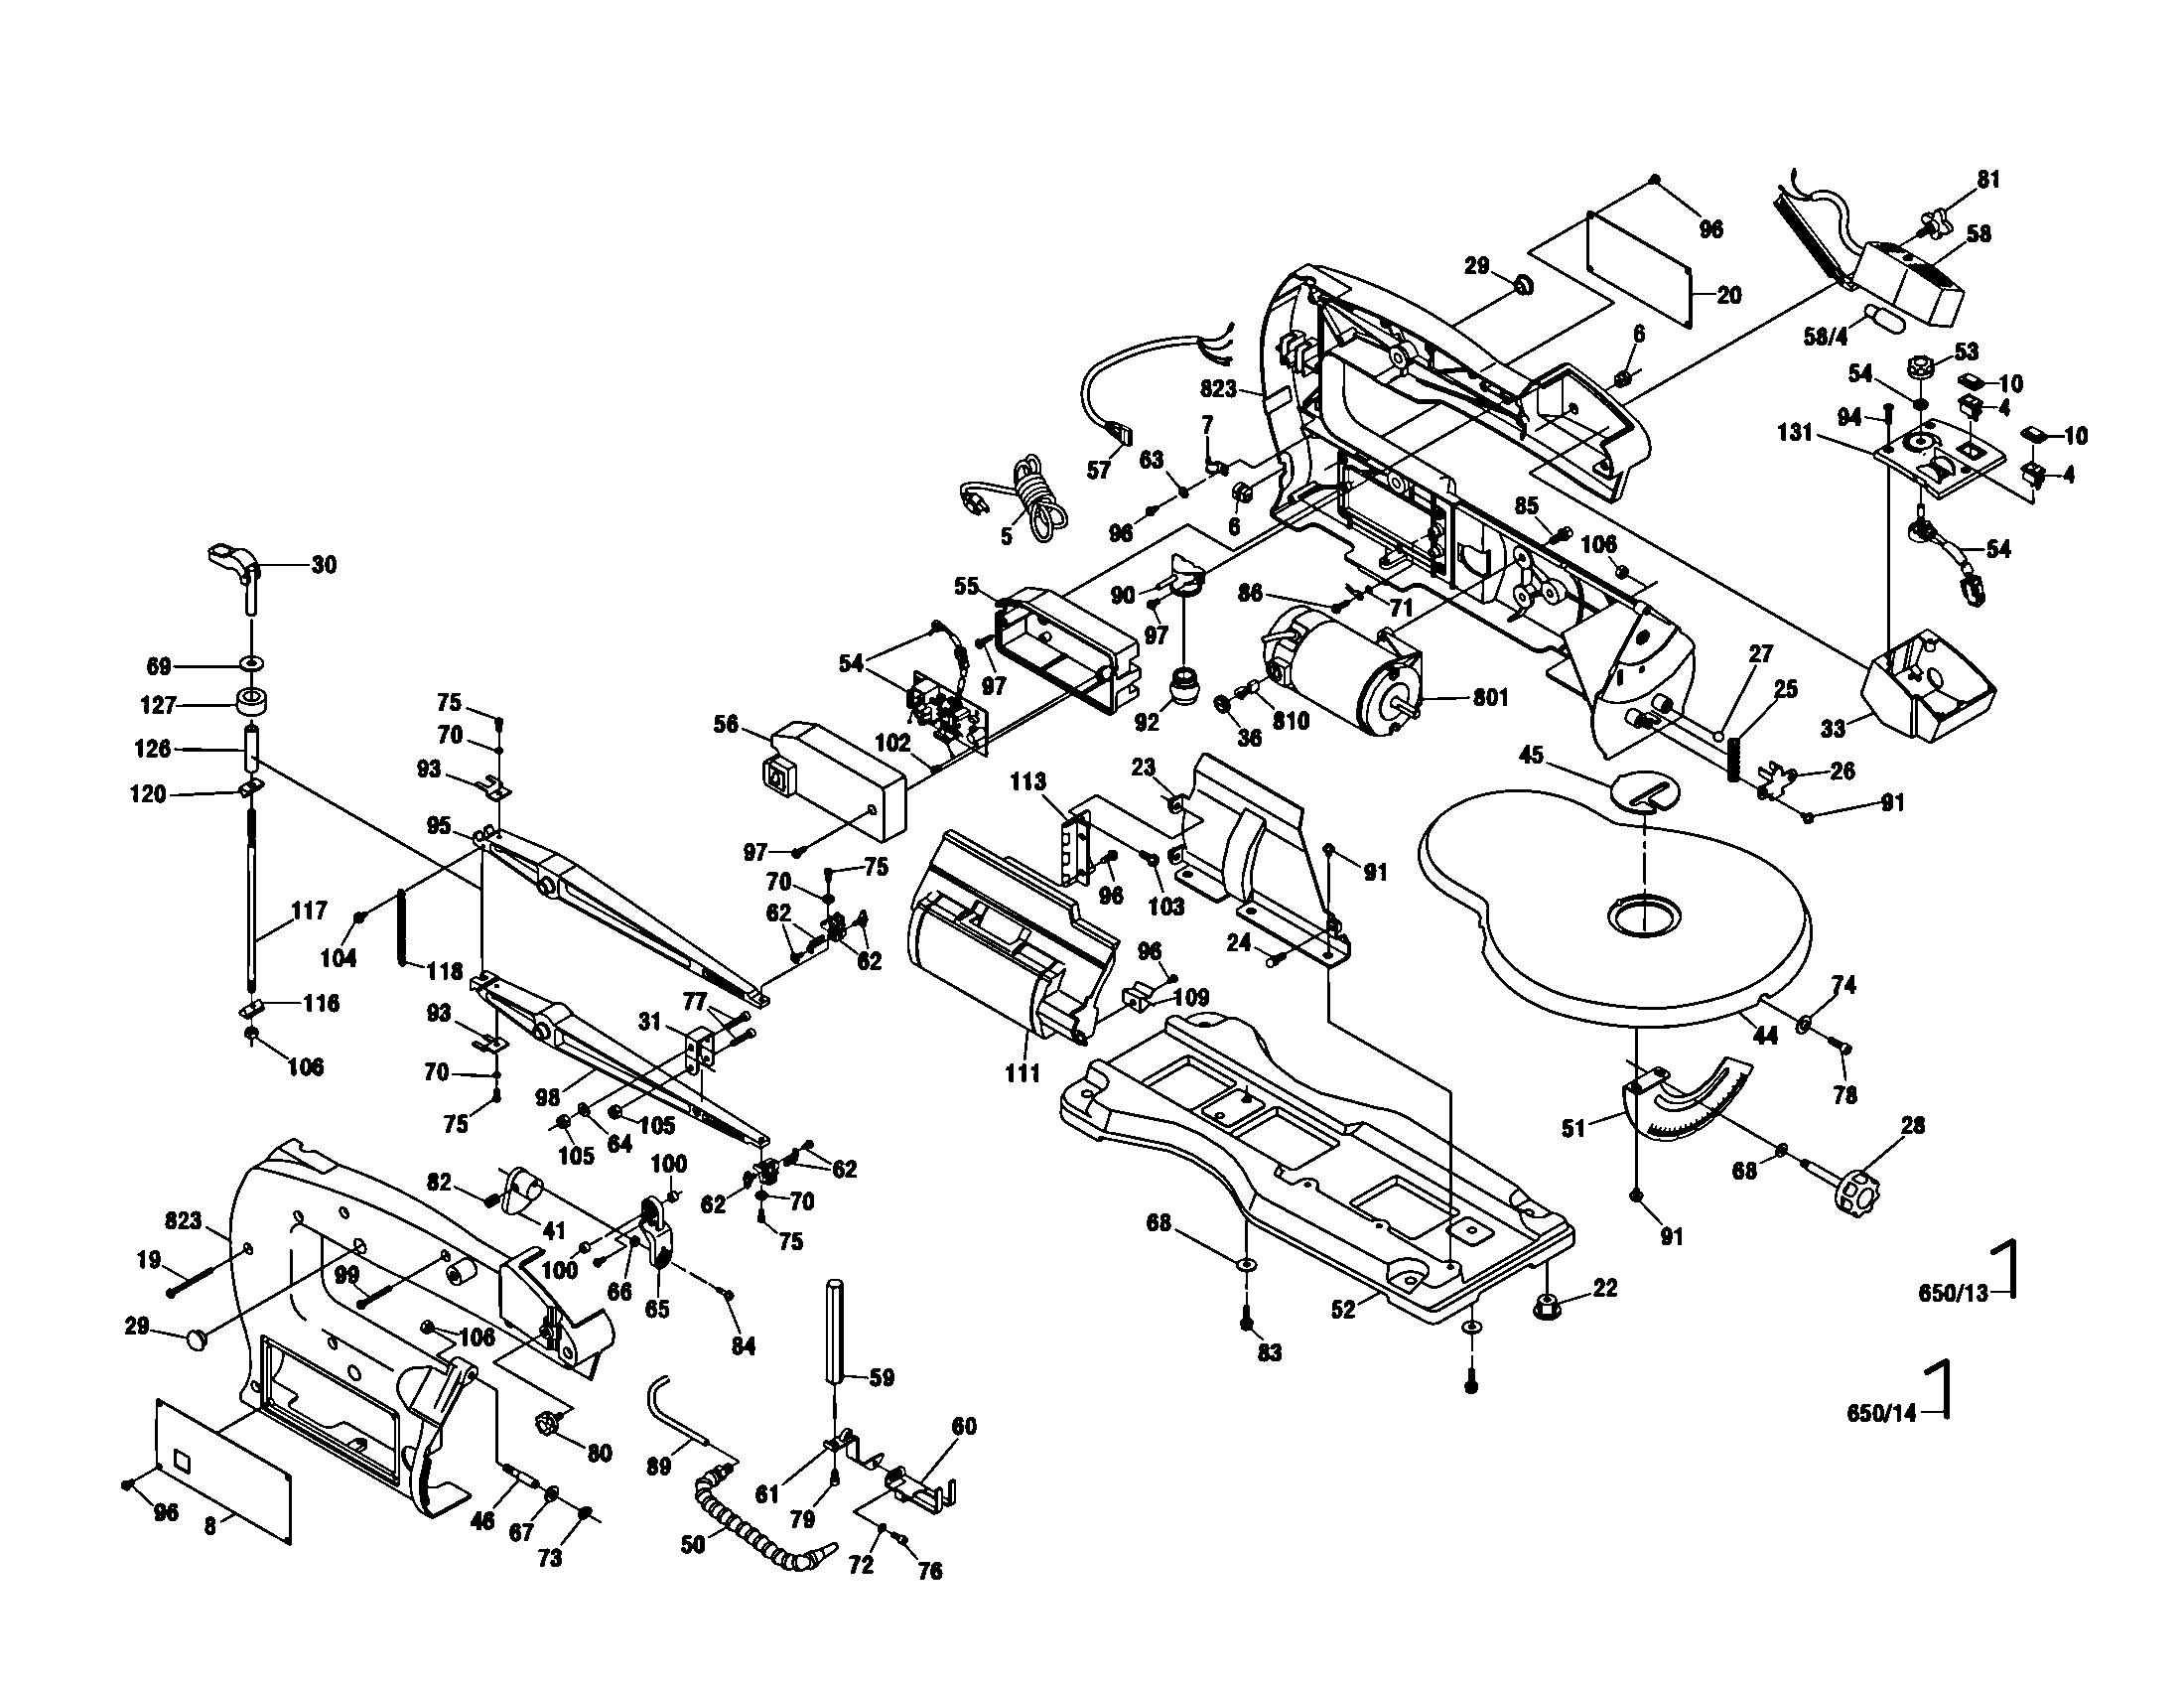 hight resolution of scroll saw diagram parts list for model 1680 dremel parts saw